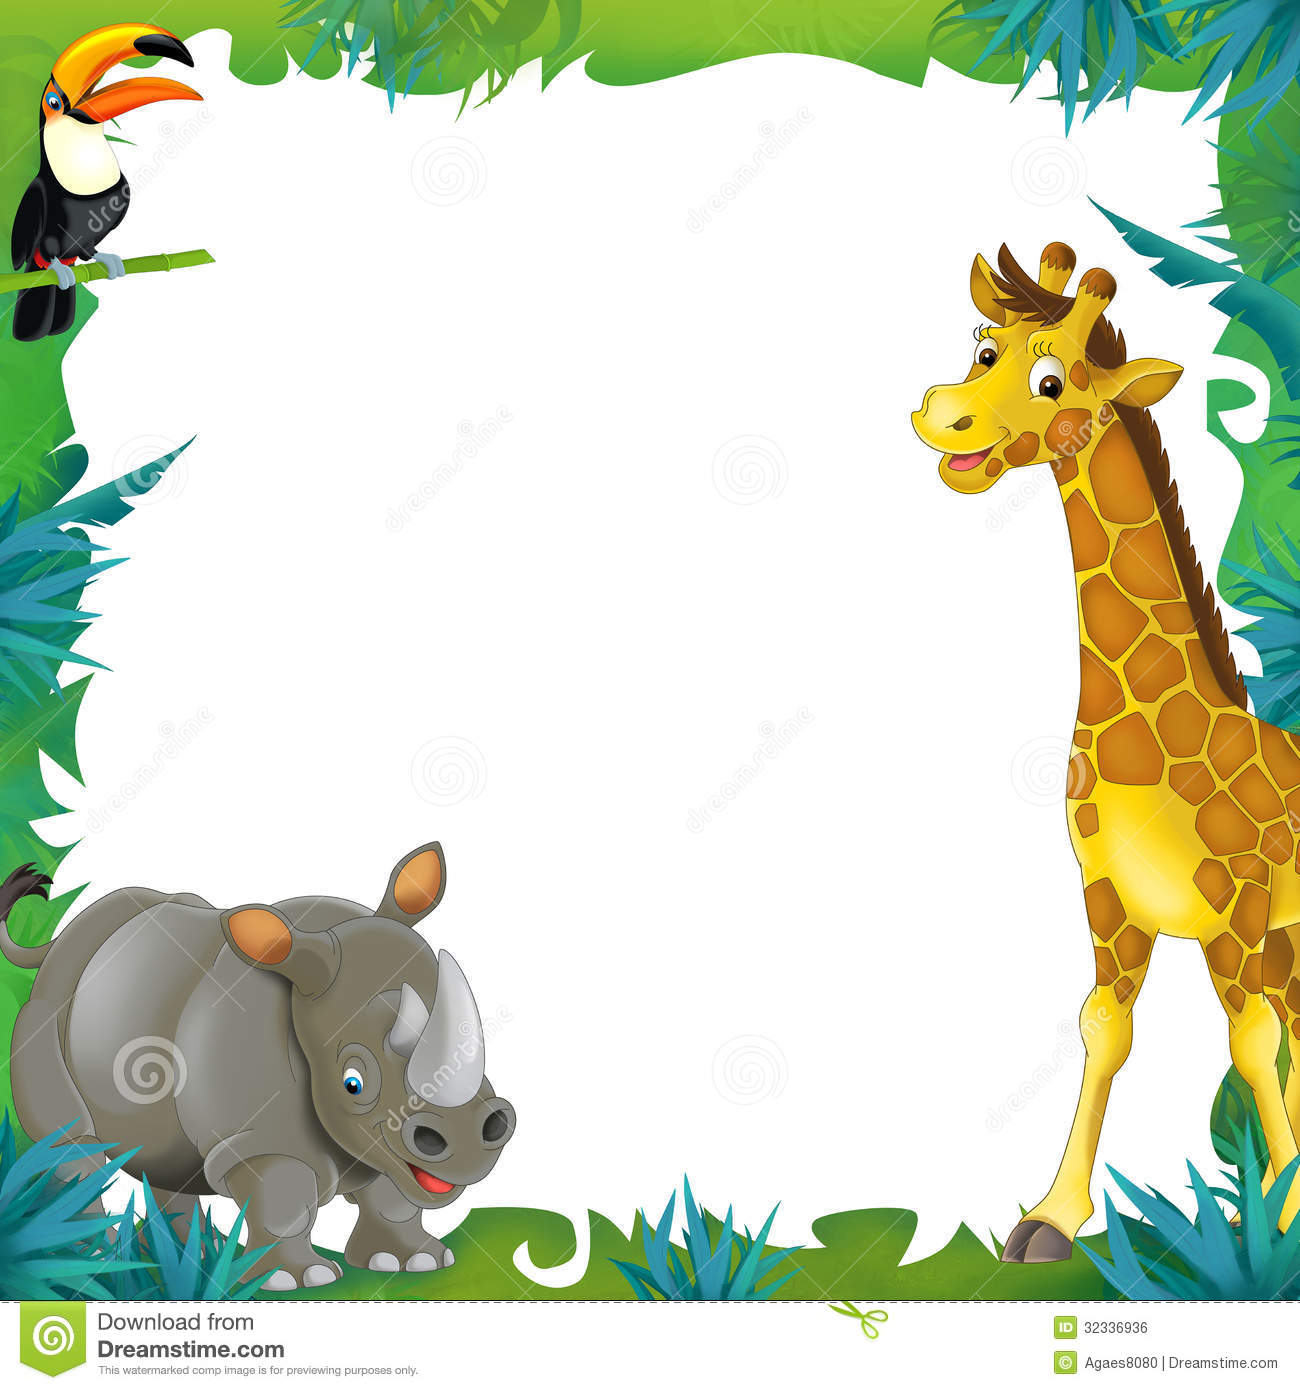 Frame clipart safari Cartoon Children The Illustration Frame